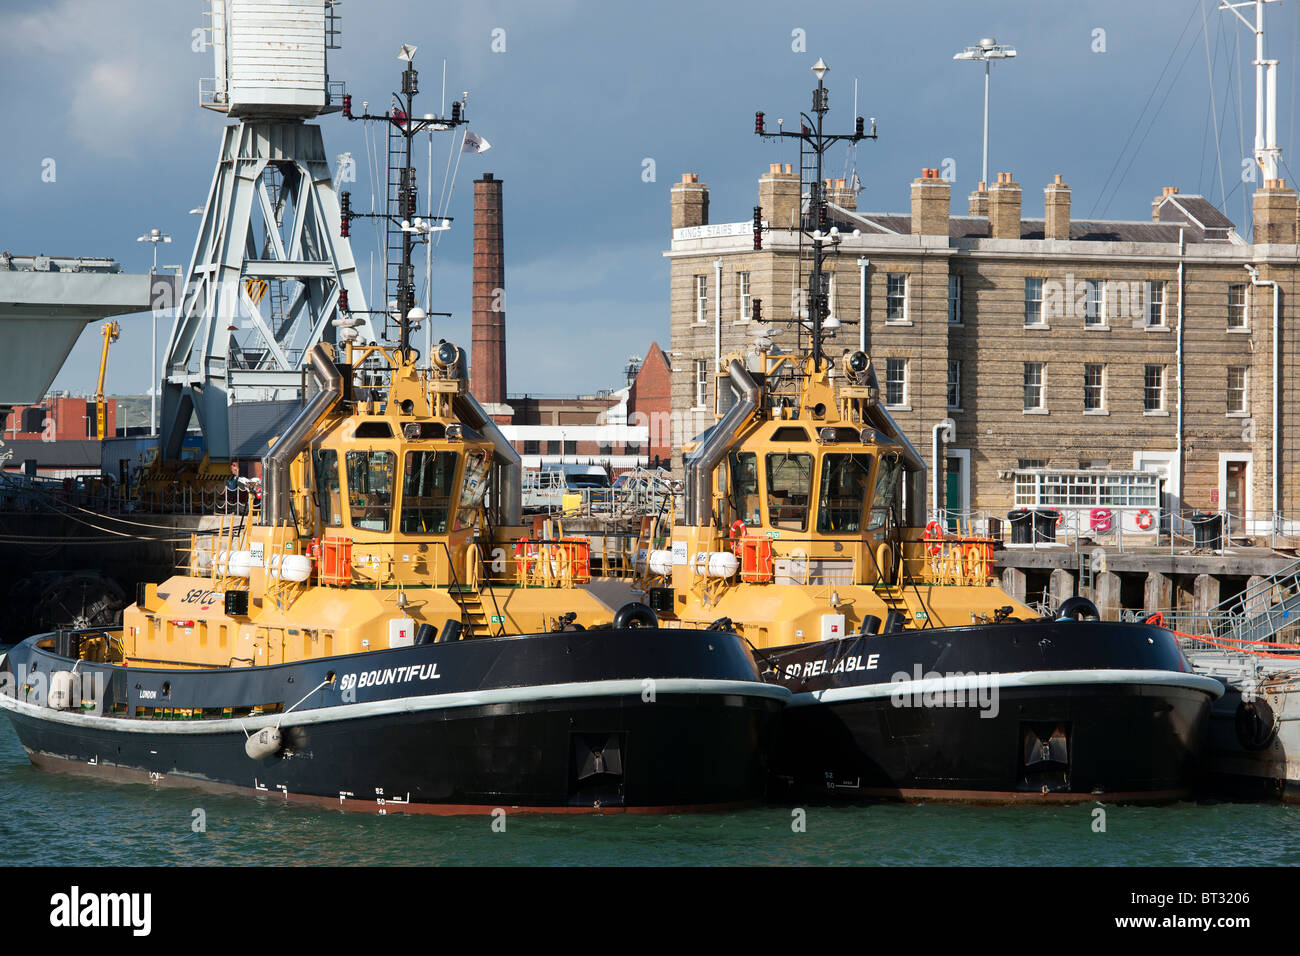 New tugs for the Portsmouth Harbour Authorities, Portsmouth Dockyard, Portsmouth, Hampshire, England, UK. - Stock Image